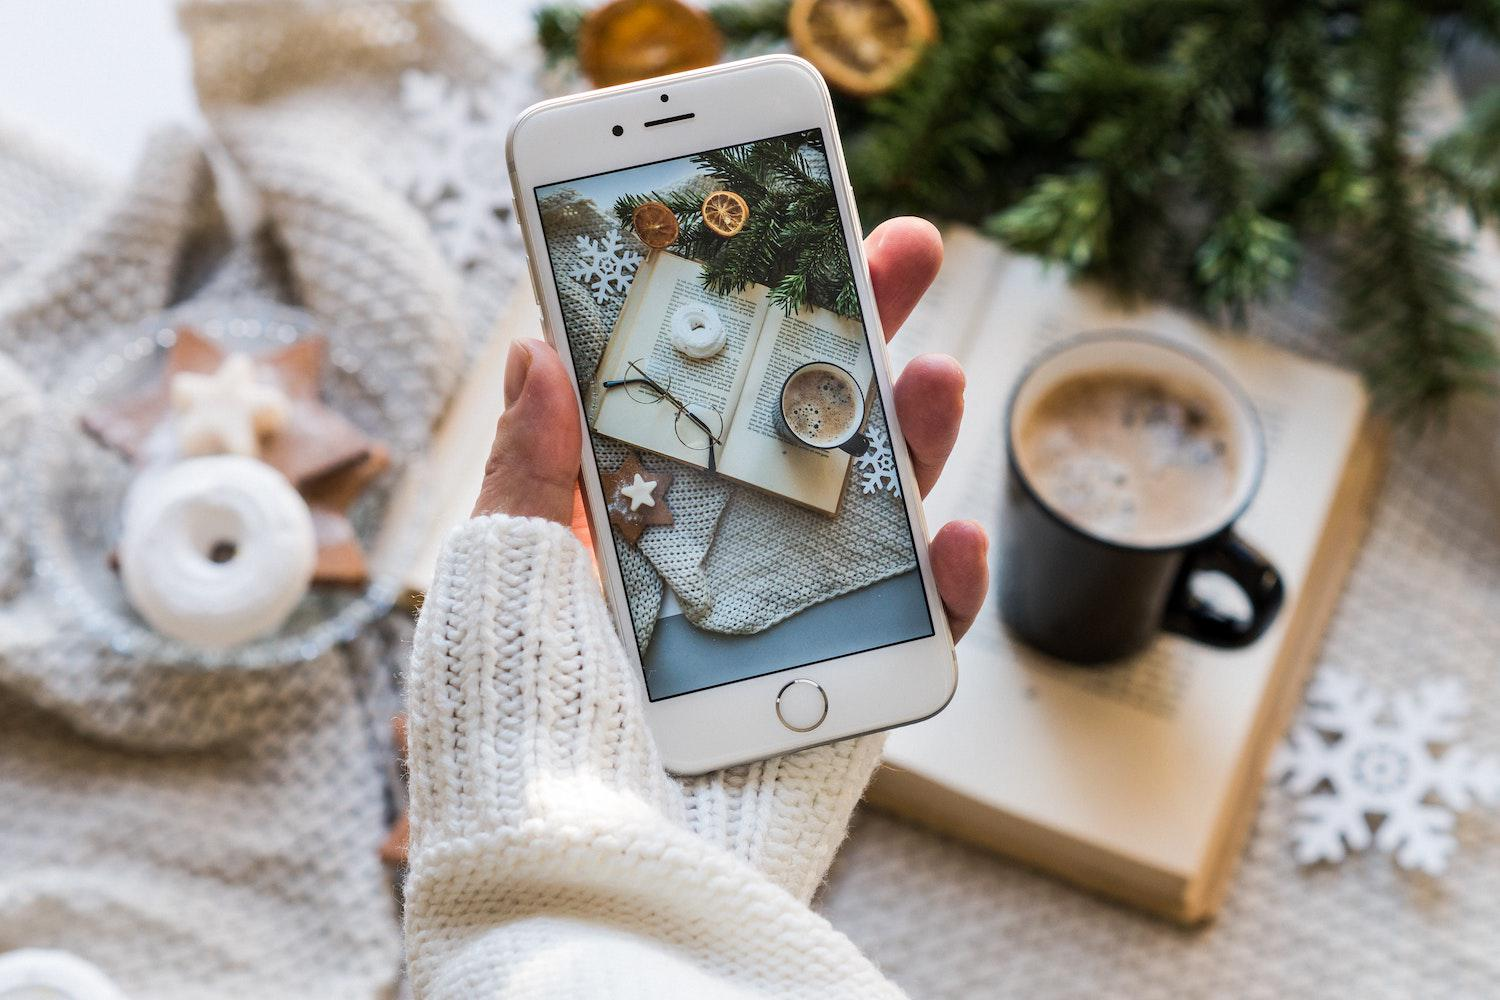 5 iPhone Apps for Image Editing That Are Making Adobe Sweat